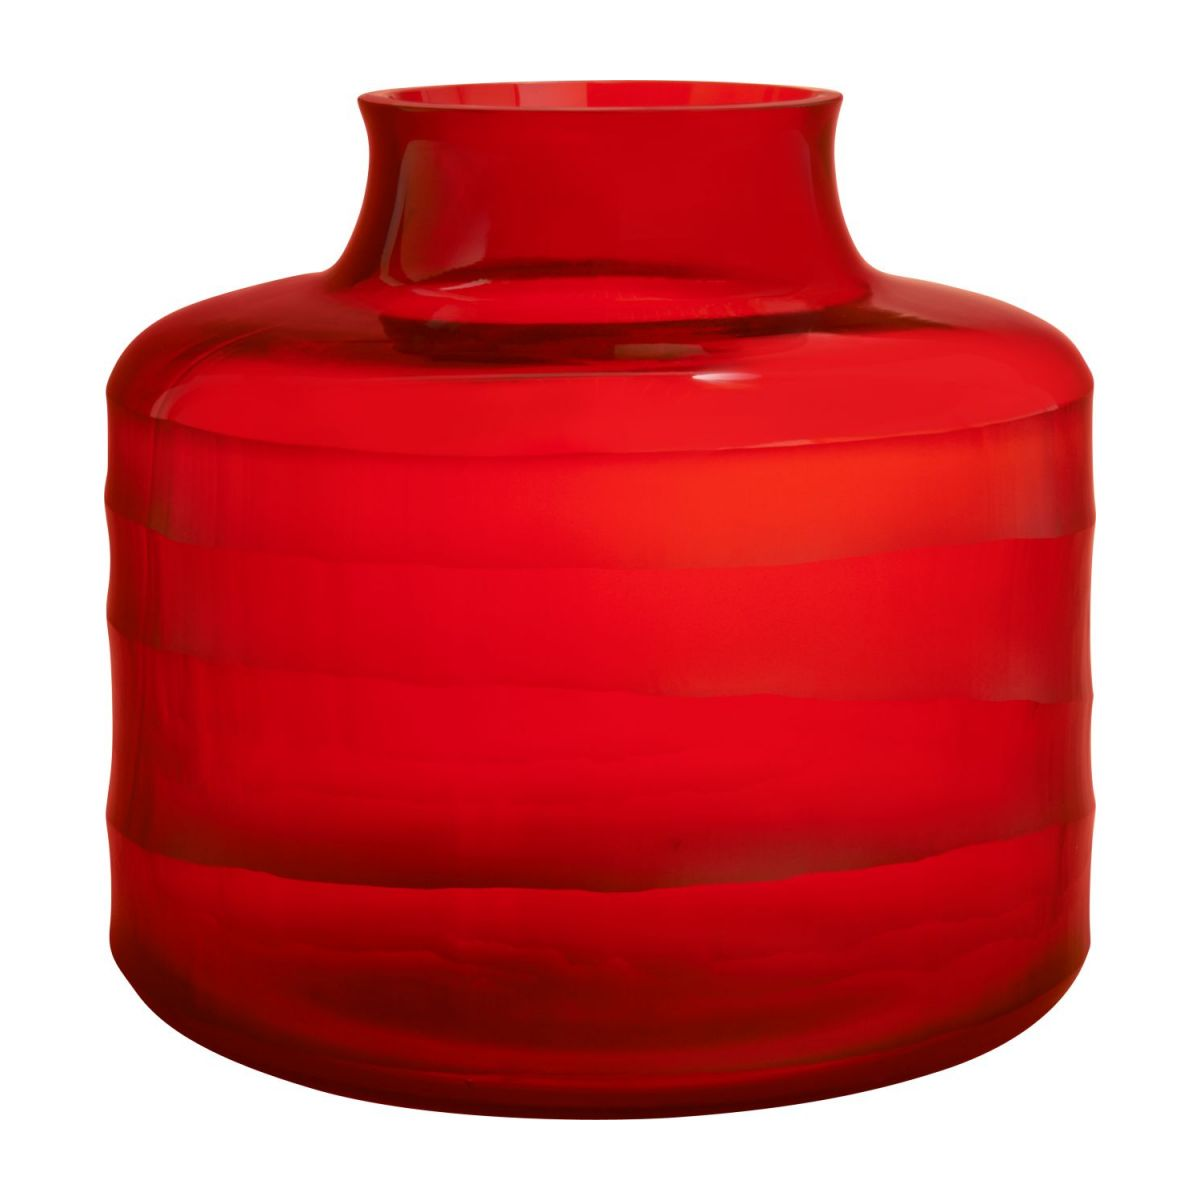 Vase 20 cm made in glass, red n°1